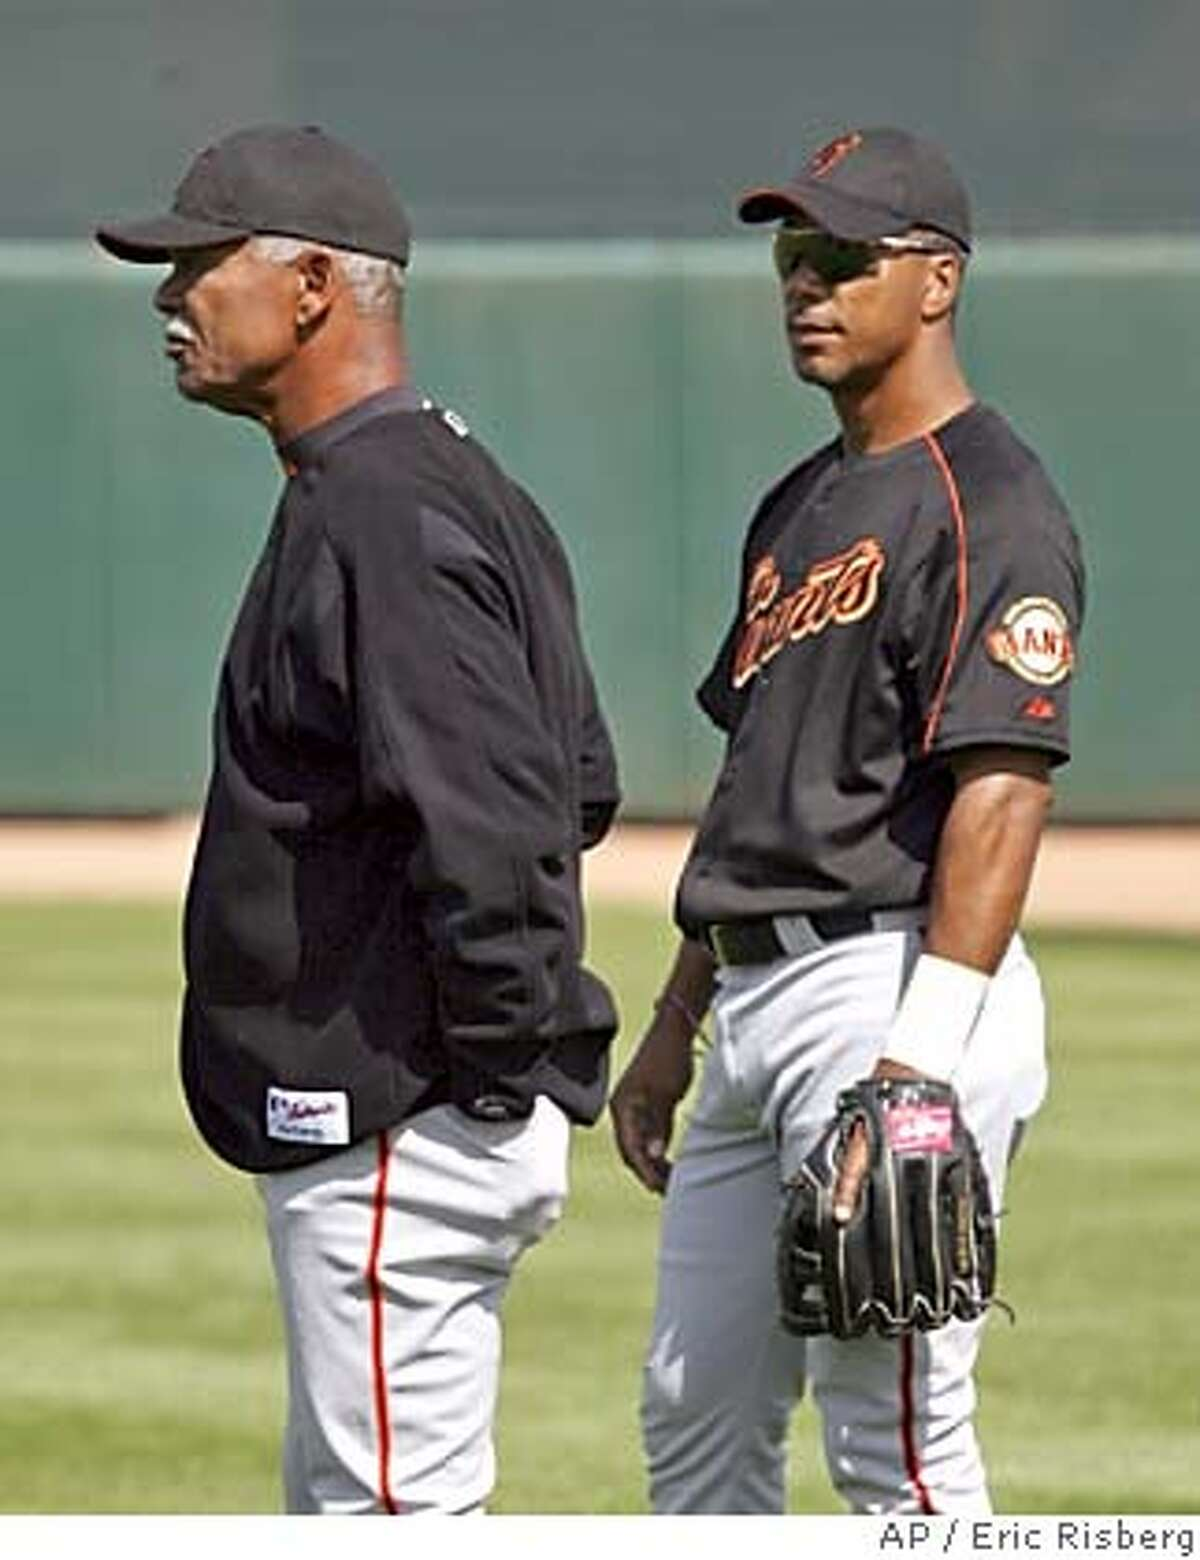 San Francisco Giants manager Felipe Alou, left, stands with his son, Giants right fielder Moises Alou, right, in right field at Scottsdale Stadium during spring training in Scottsdale, Ariz., Monday Feb. 28, 2005. (AP Photo/Eric Risberg)